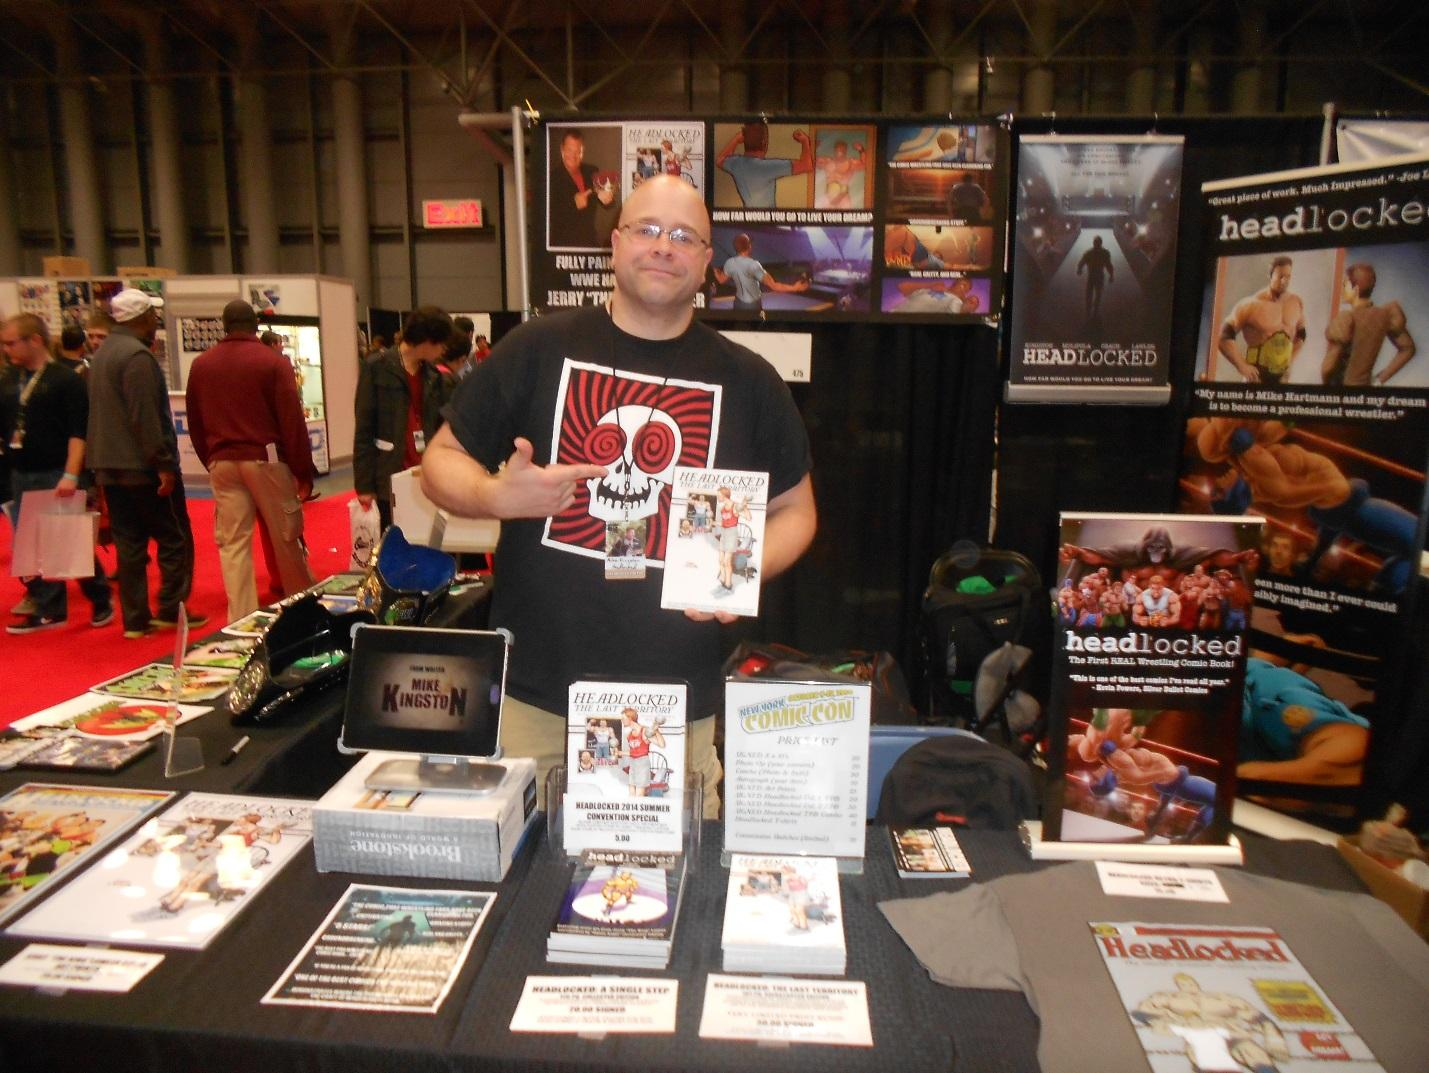 NYCC14: Interview with 'Headlocked' Creator Mike Kingston